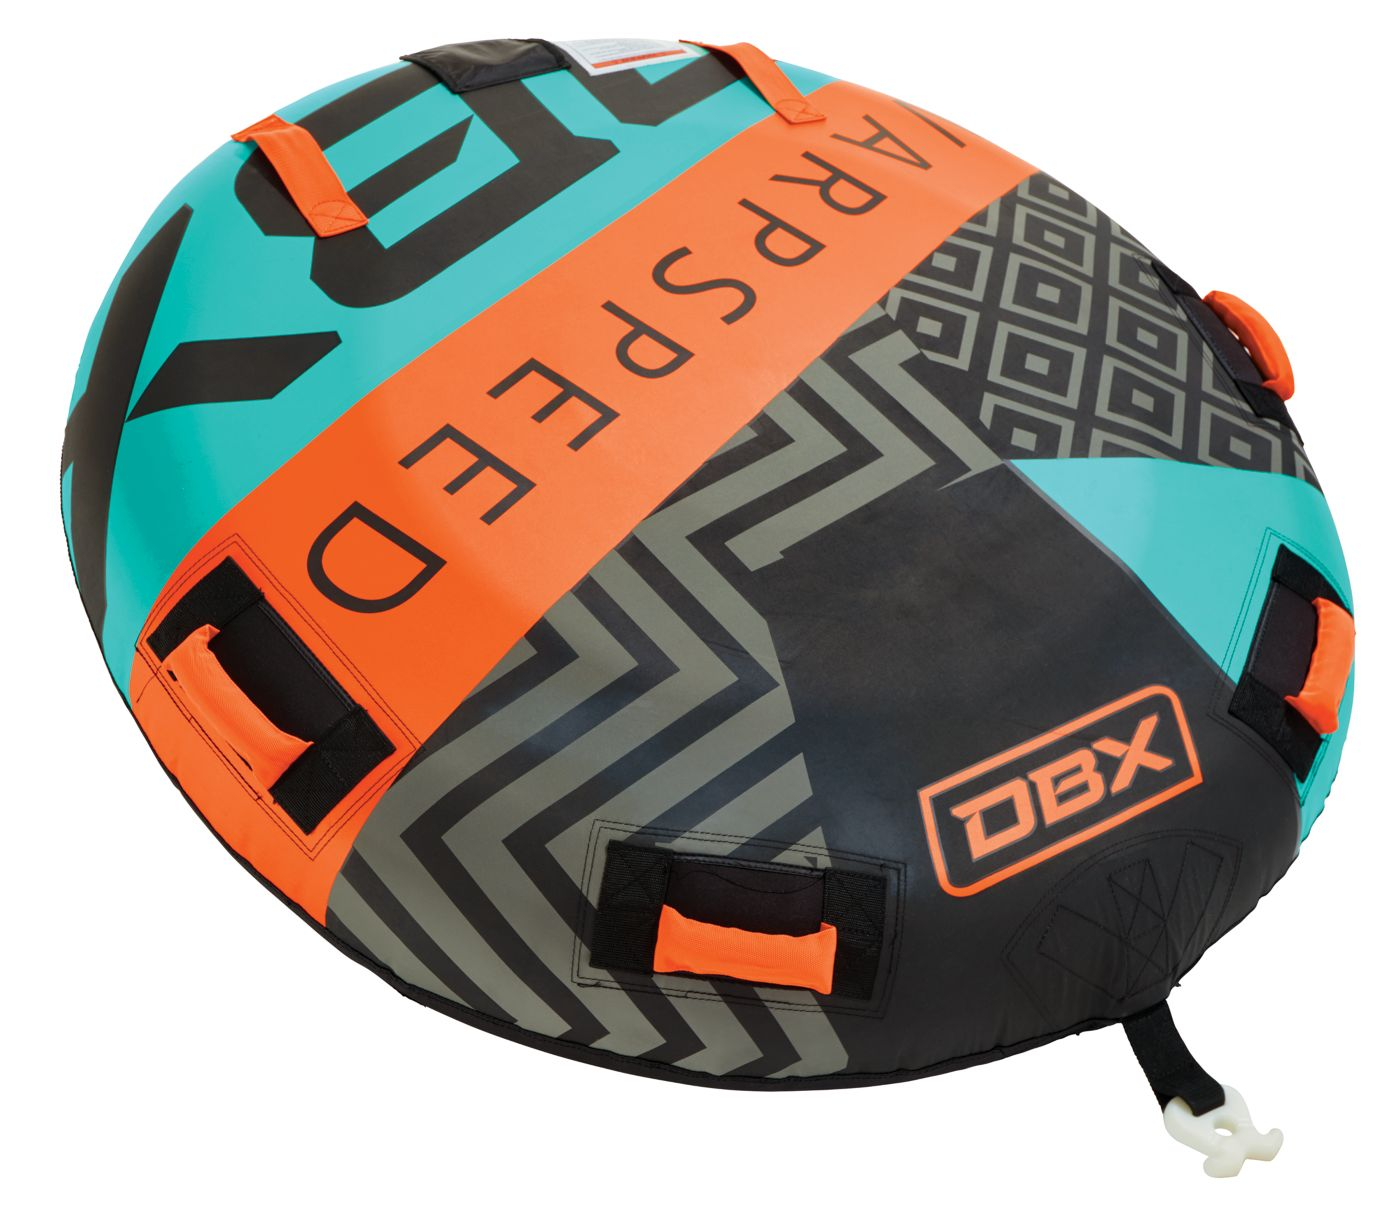 DBX Warp Speed 2-Person Towable Tube